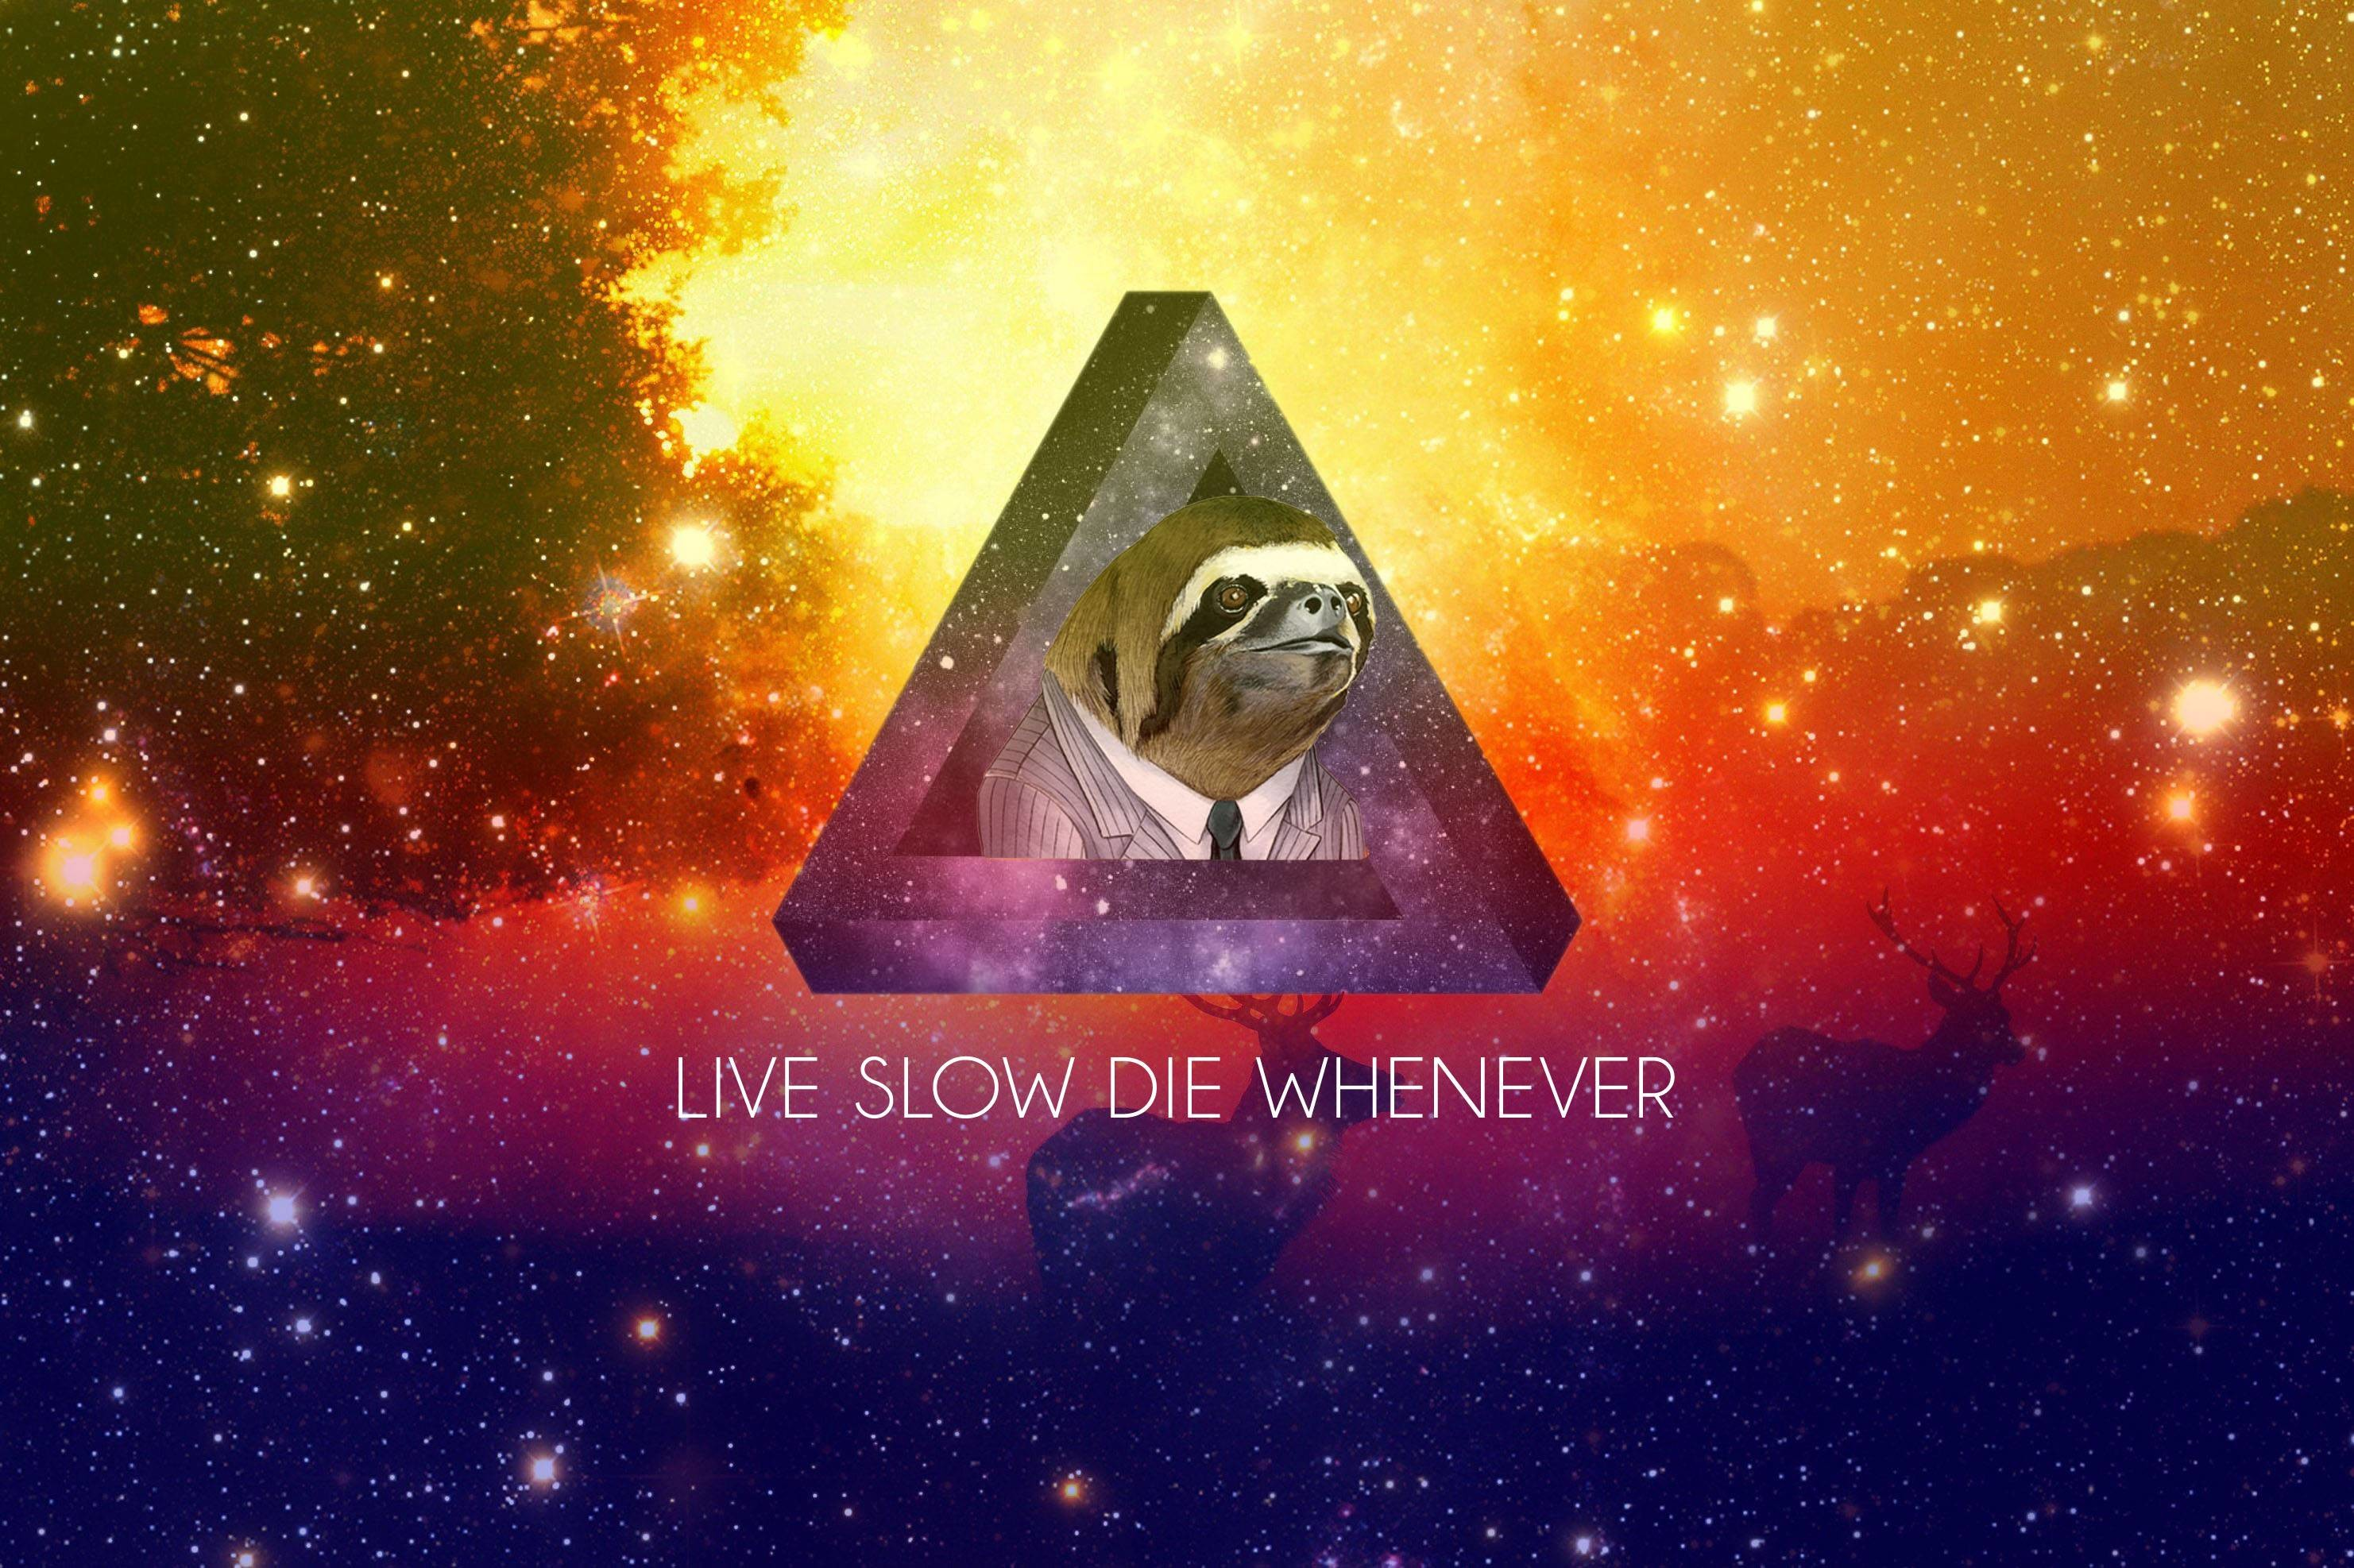 2963x1974 A small collection of Sloth wallpapers